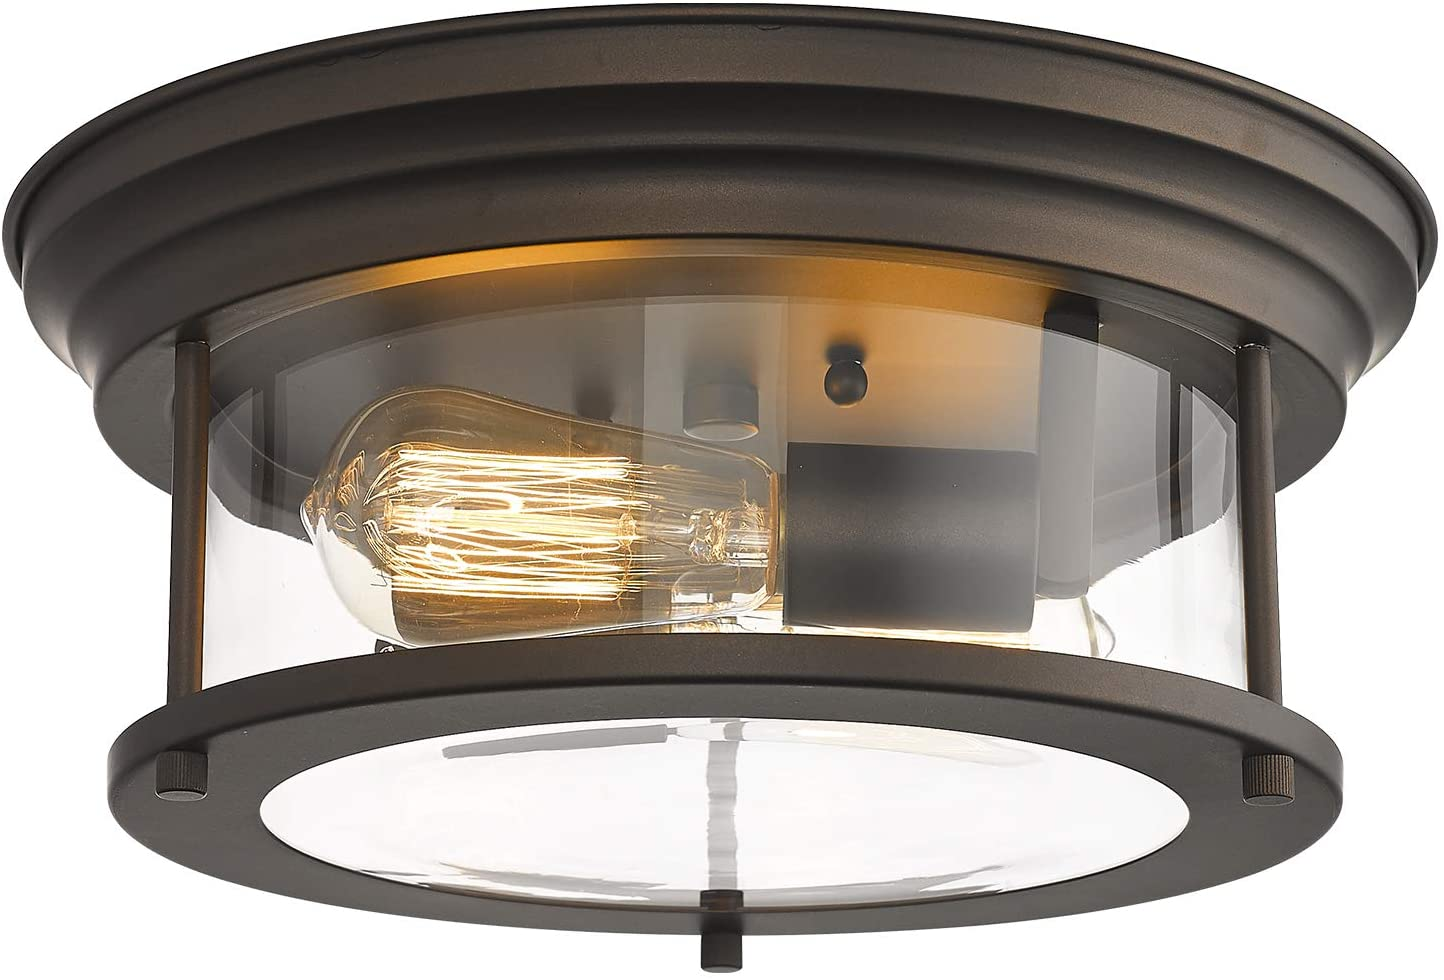 Zeyu Flush Mount Ceiling Light, 2-Light Ceiling Light Fixture 13 inch, Oil Rubbed Bronze and Clear Glass Shade, ZY15-F ORB